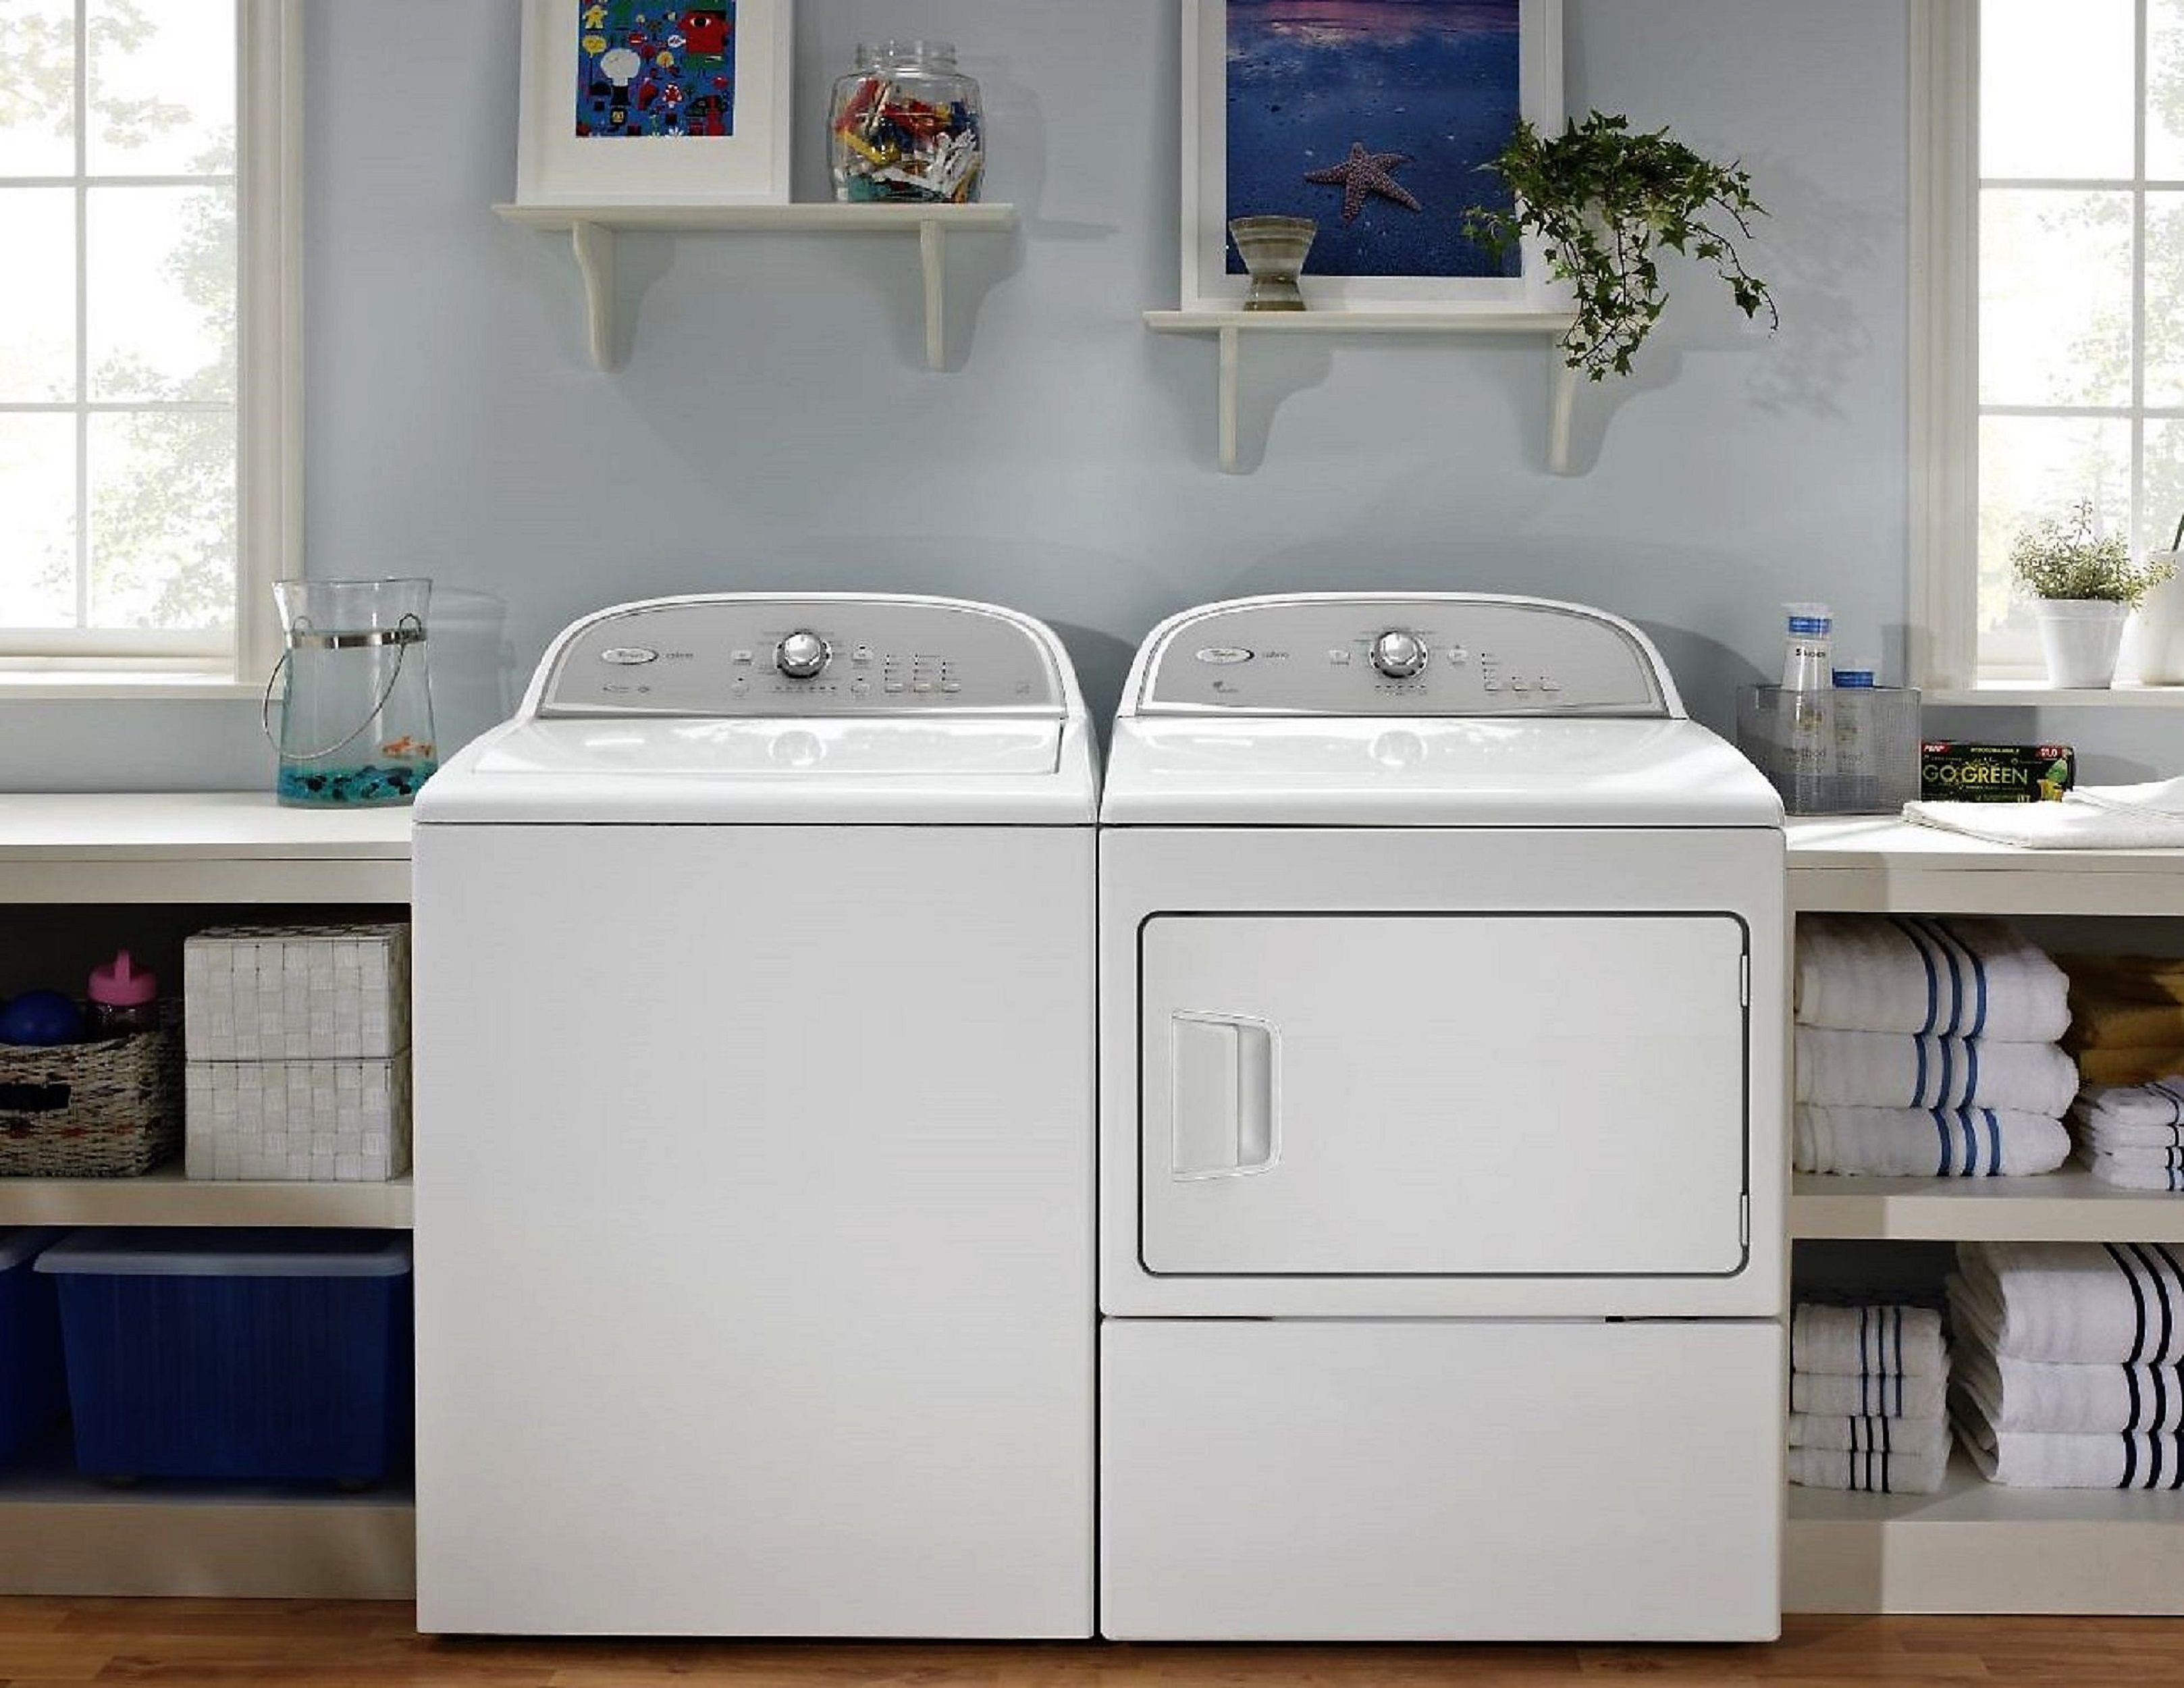 Troubleshooting Whirlpool Cabrio Washer Error Codes